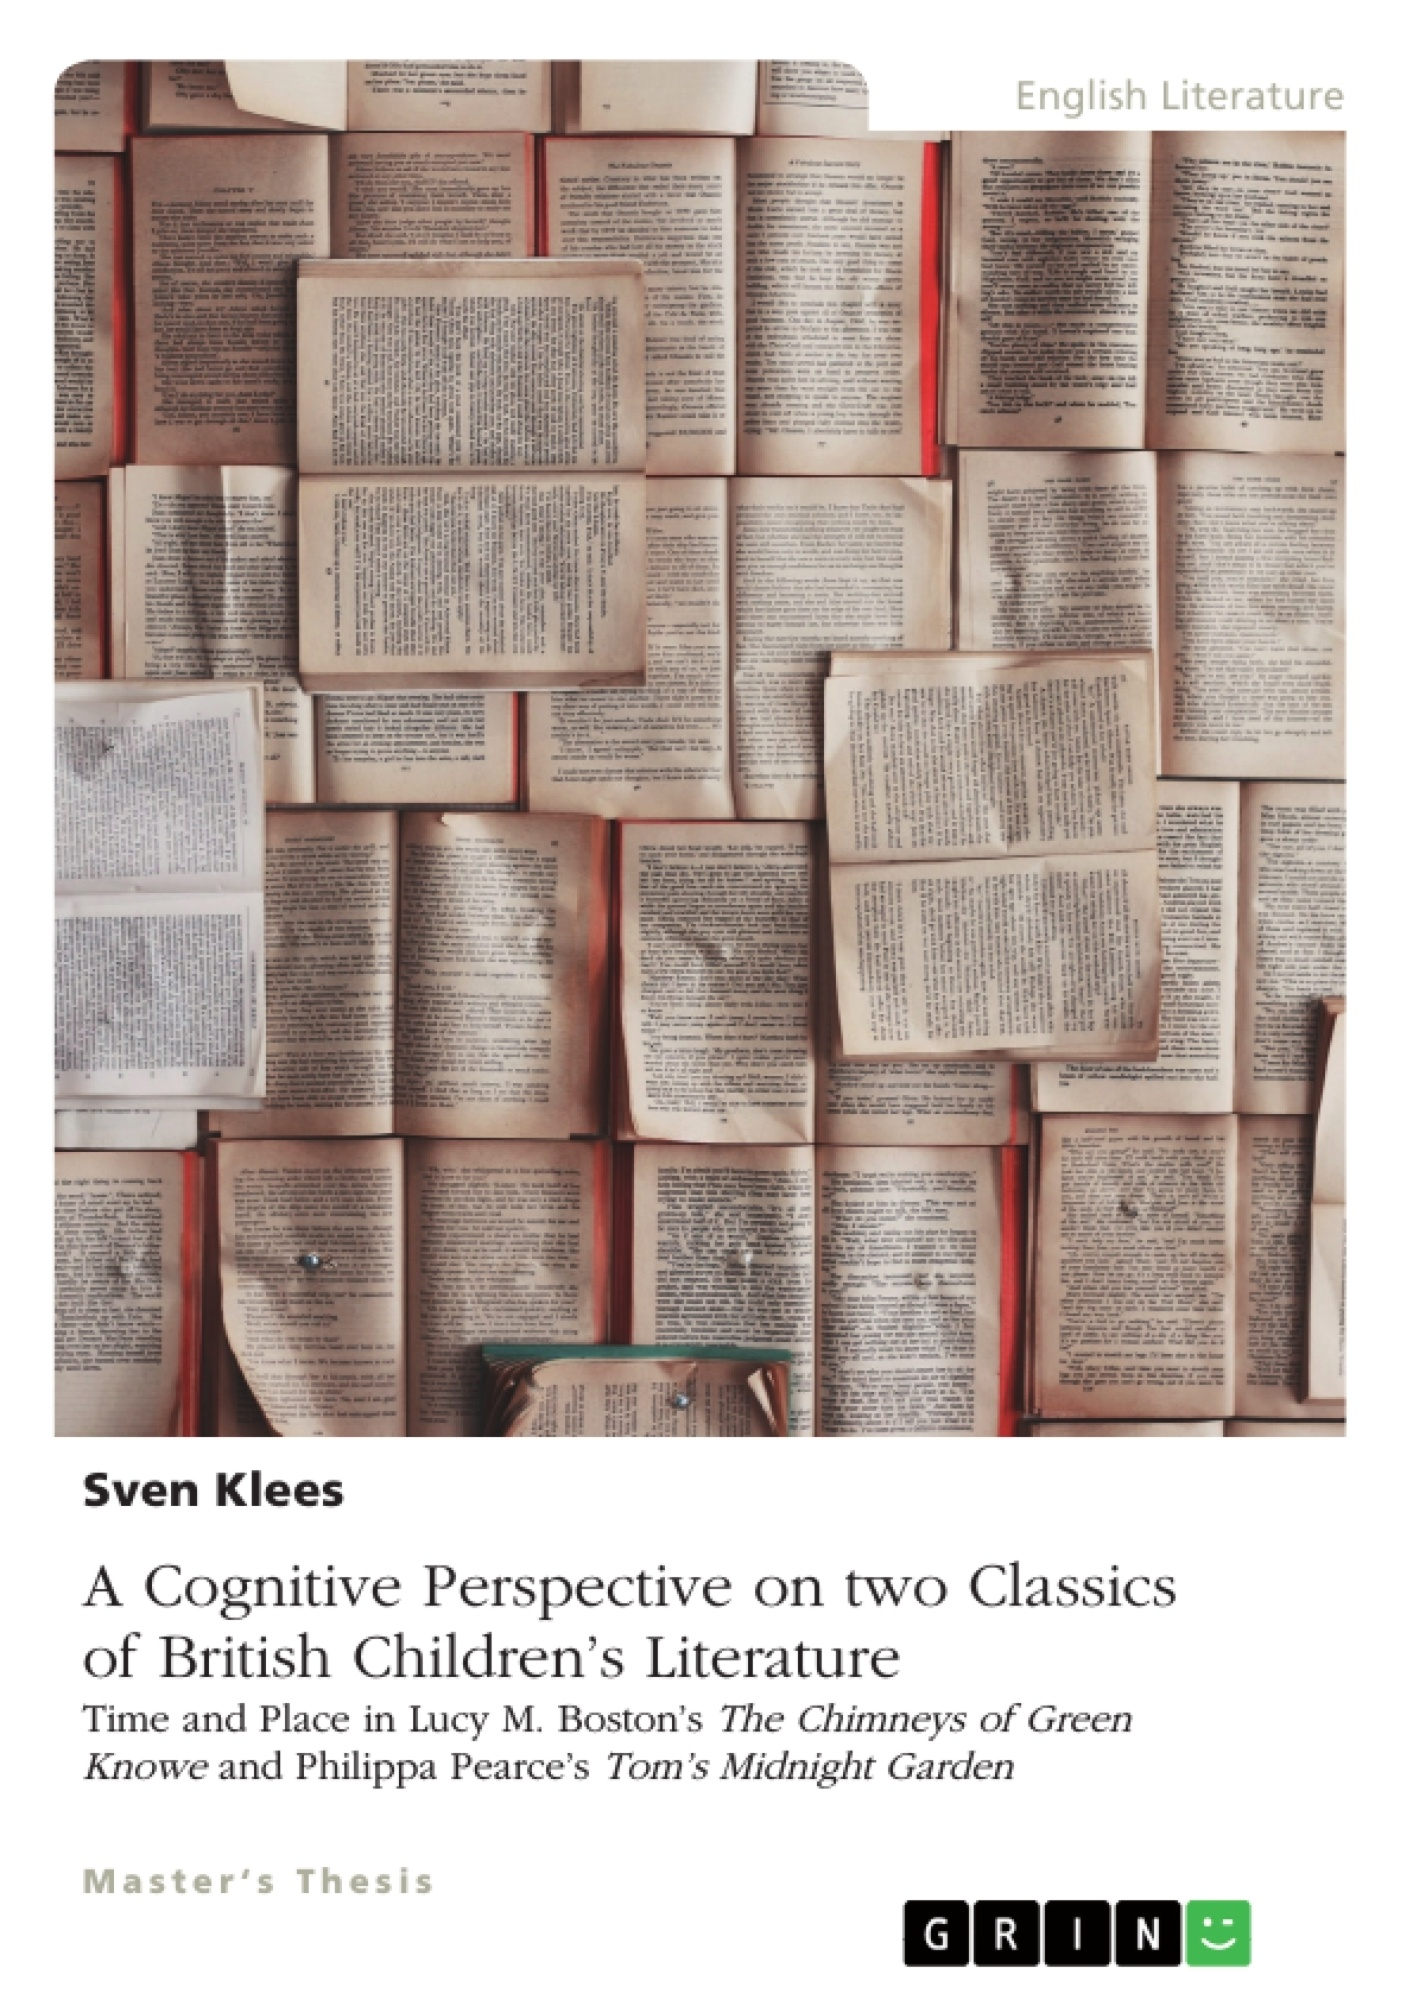 Title: A Cognitive Perspective on two Classics of British Children's Literature